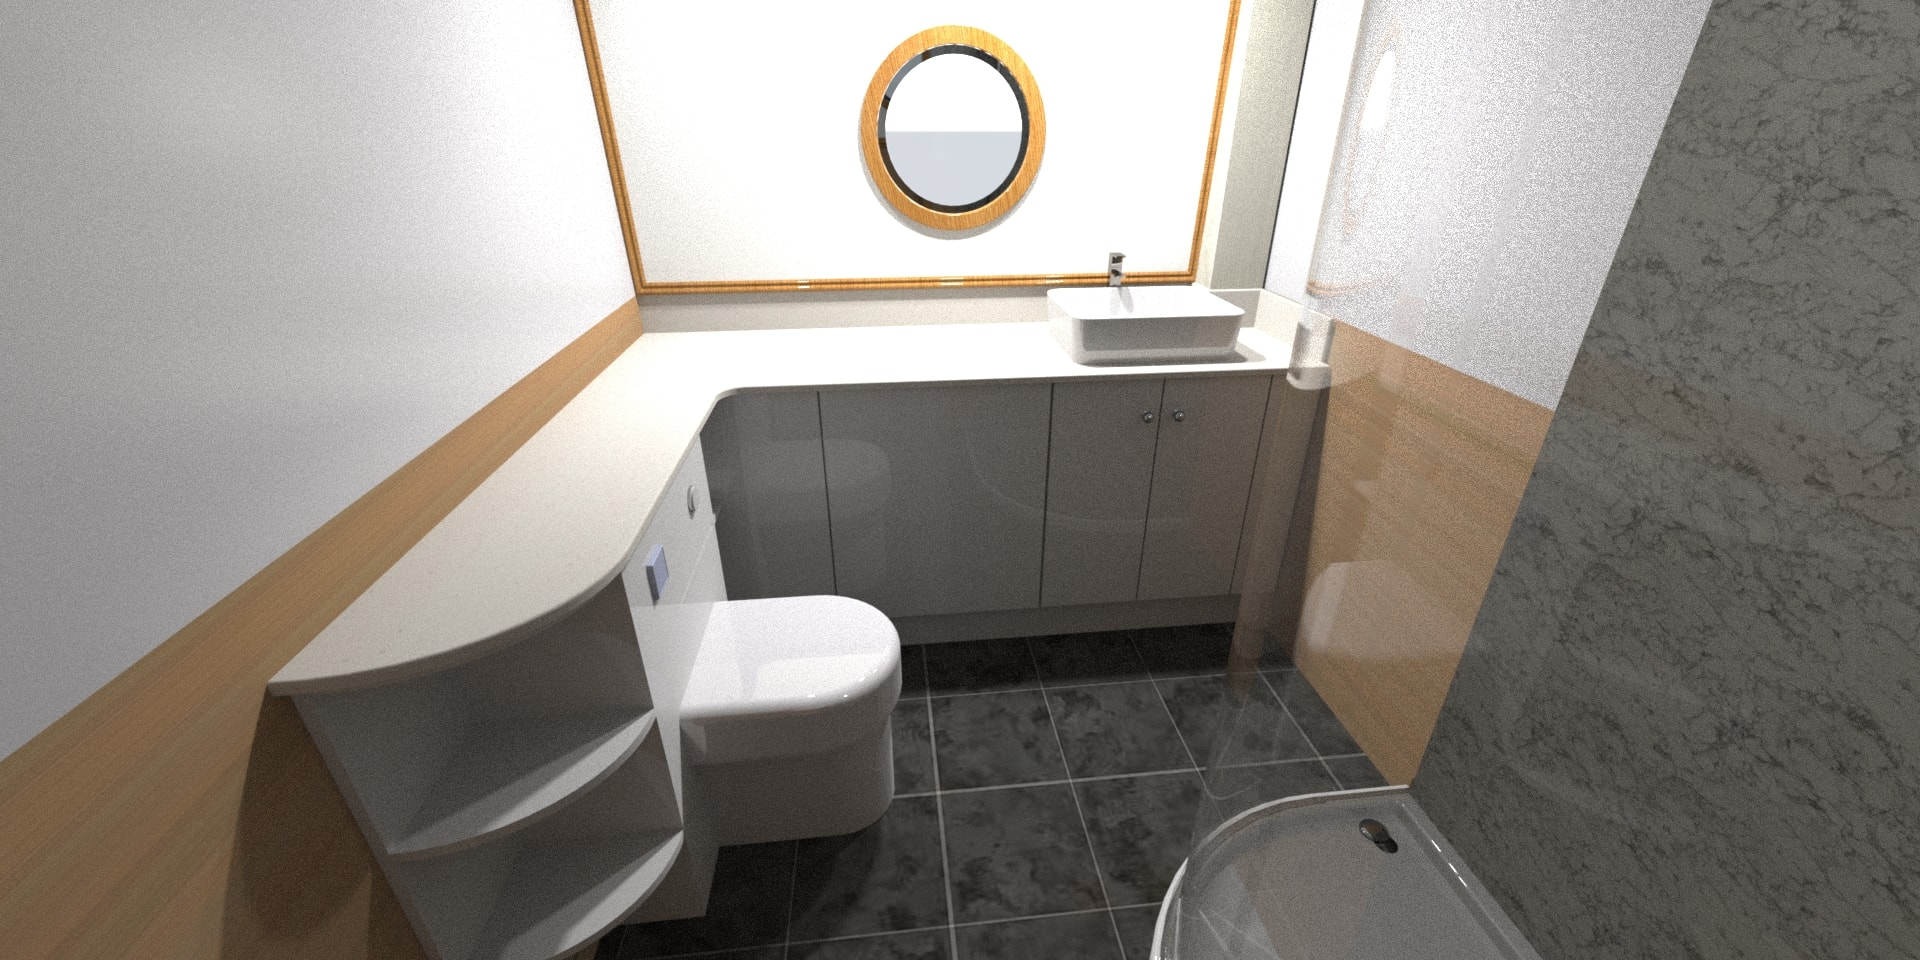 Pump out toilet, larger shower, and stone=effect worktops